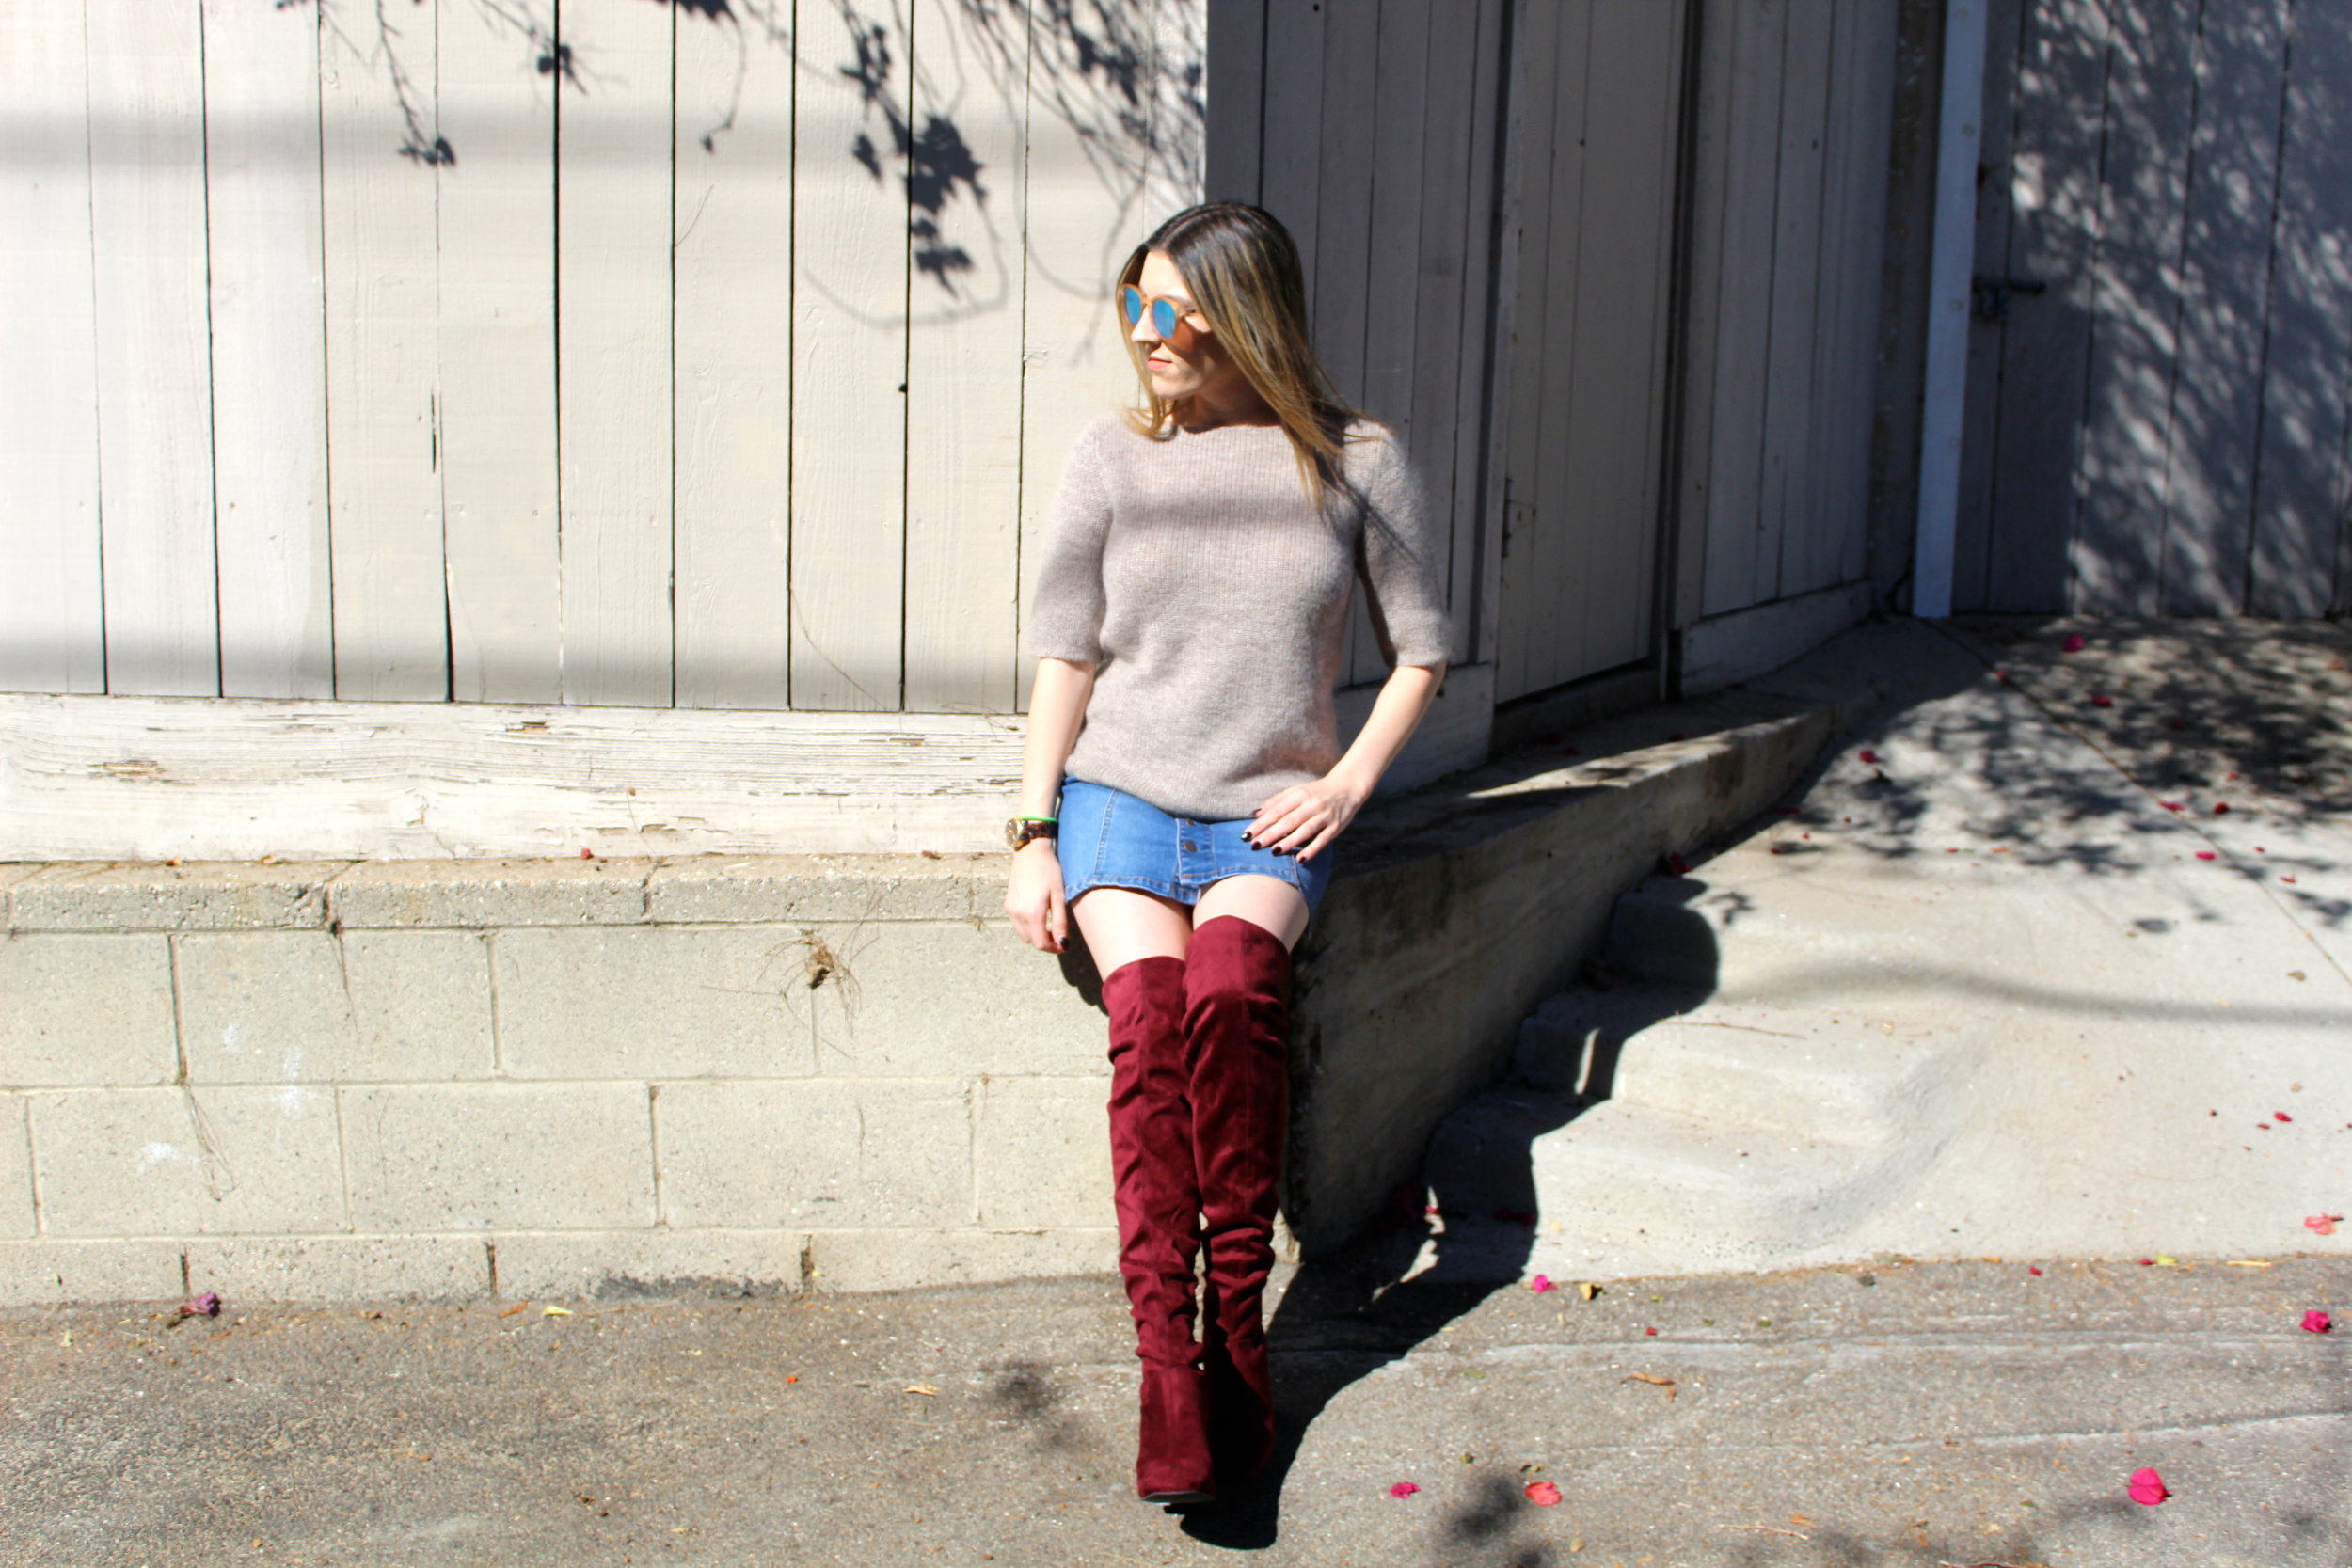 Boots:  New Look  // Skirt: American Rag,  similar here  // Sweater: Banana Republic,  similar here   // Sunnies: Le Specs,  similar here   Over the knee boots are one of the hottest shoes for the fall and winter season, and these red ones are to die for! In a previous post I shared all of my fall cravings, and these stunners were definitely on that list! I finally snagged myself a pair and oh how I love them! I decided this year to go with a pair that was an unconventional color like these red ones because I already own a brown pair and most likely will be adding a black pair to my closet. These type of boots can dress up the simplest of outfits and make anyone wearing them feel like a million bucks! I chose to style this look with a cute little button down denim skirt and an oversized mohair sweater, which I love! I really wanted these boots to stand out and be the sexy little stars that they are! Finally I put on my new mirrored Le Specs sunglasses, another new closet fave! This look is absolutely one of my favorites and screams fall to me. Wear and repeat is my new motto with this look!   Thanks for reading!  xx Nicole